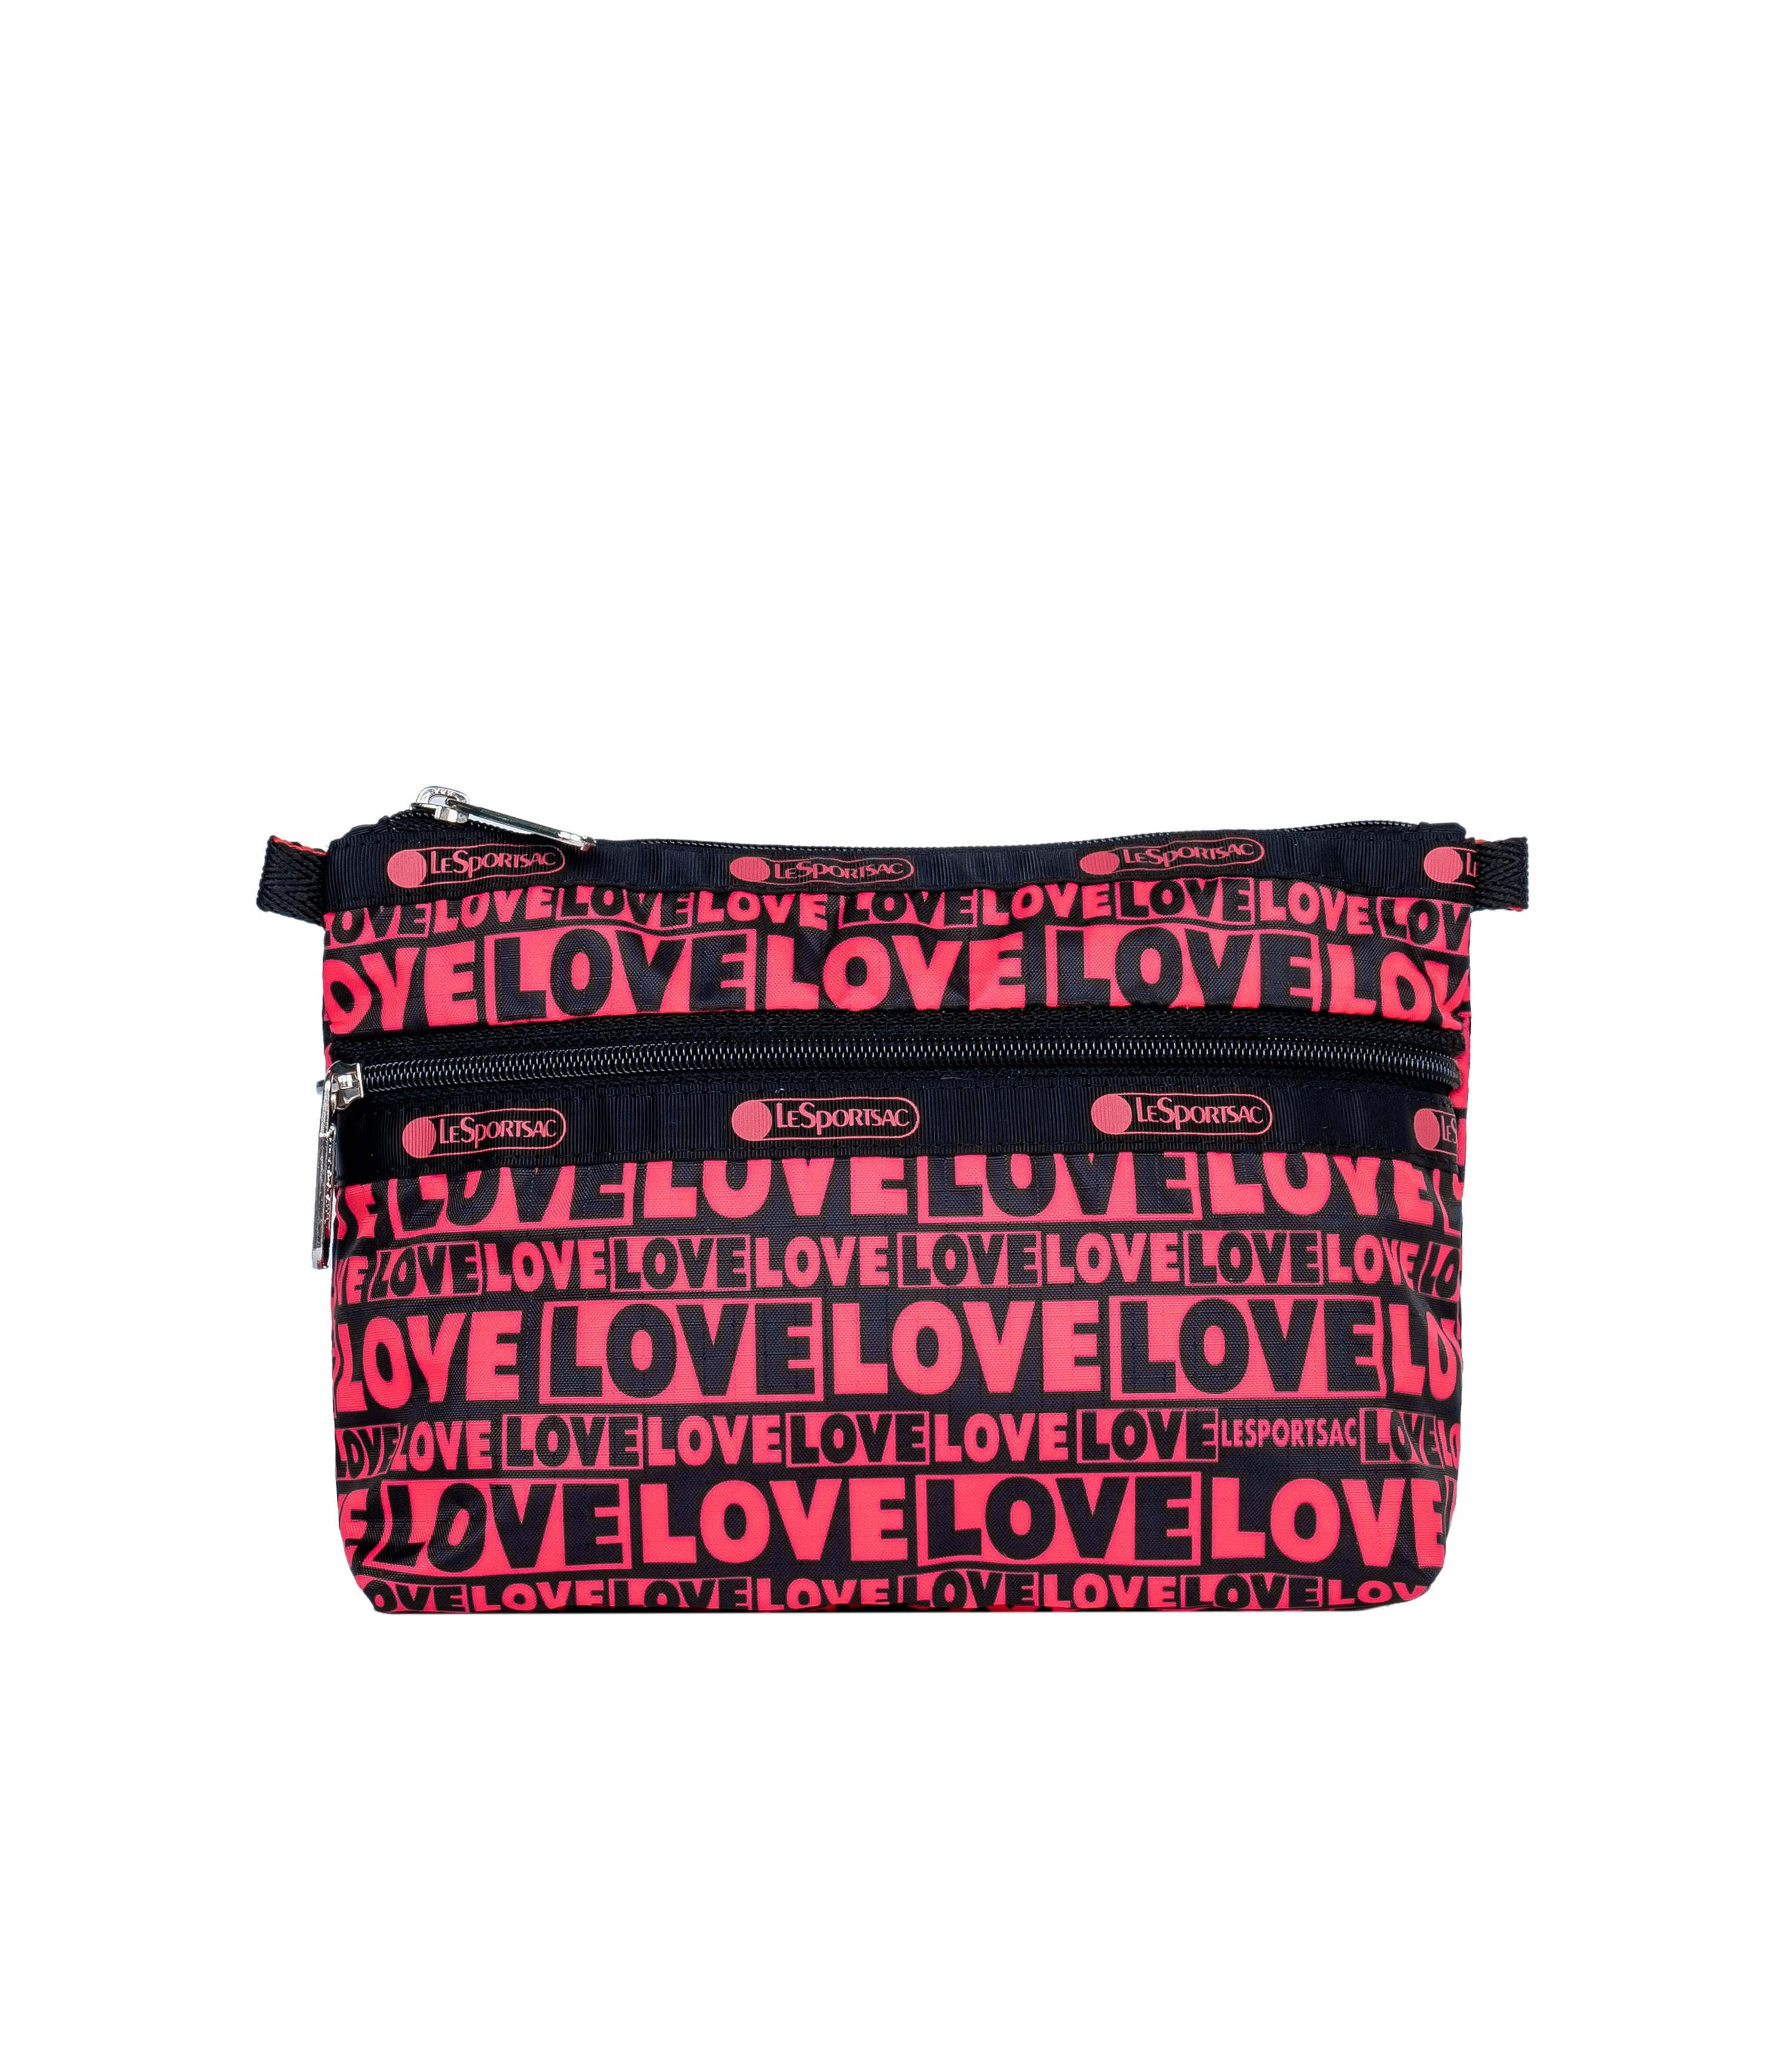 LeSportsac - Accessories - Cosmetic Clutch - Only Love print